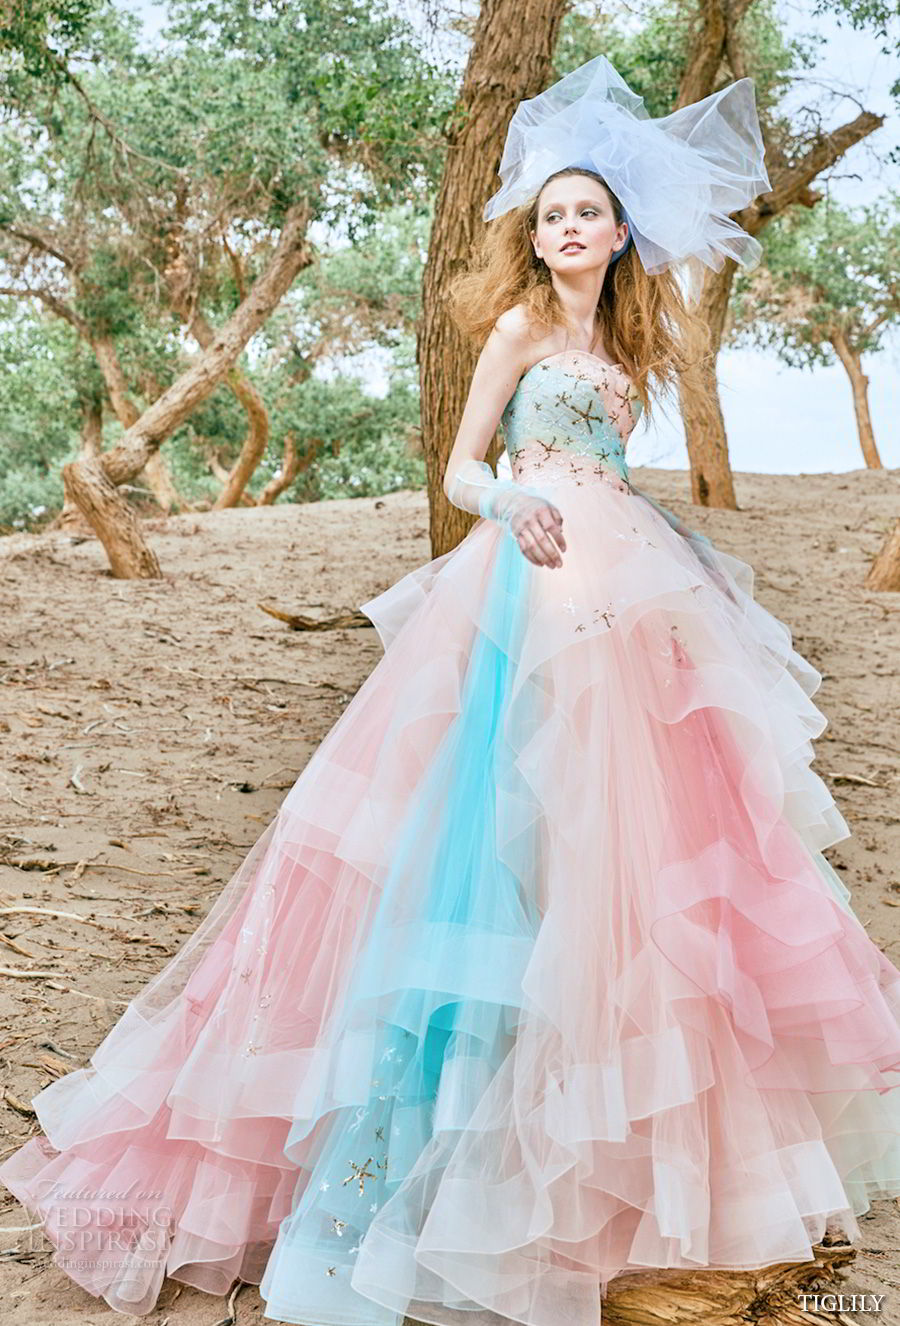 tiglily 2018 bridal strapless sweetheart neckline heavily embellished bodice layered tulle skirt pastel pink multicolor ball gown a line wedding dress (shaula) mv